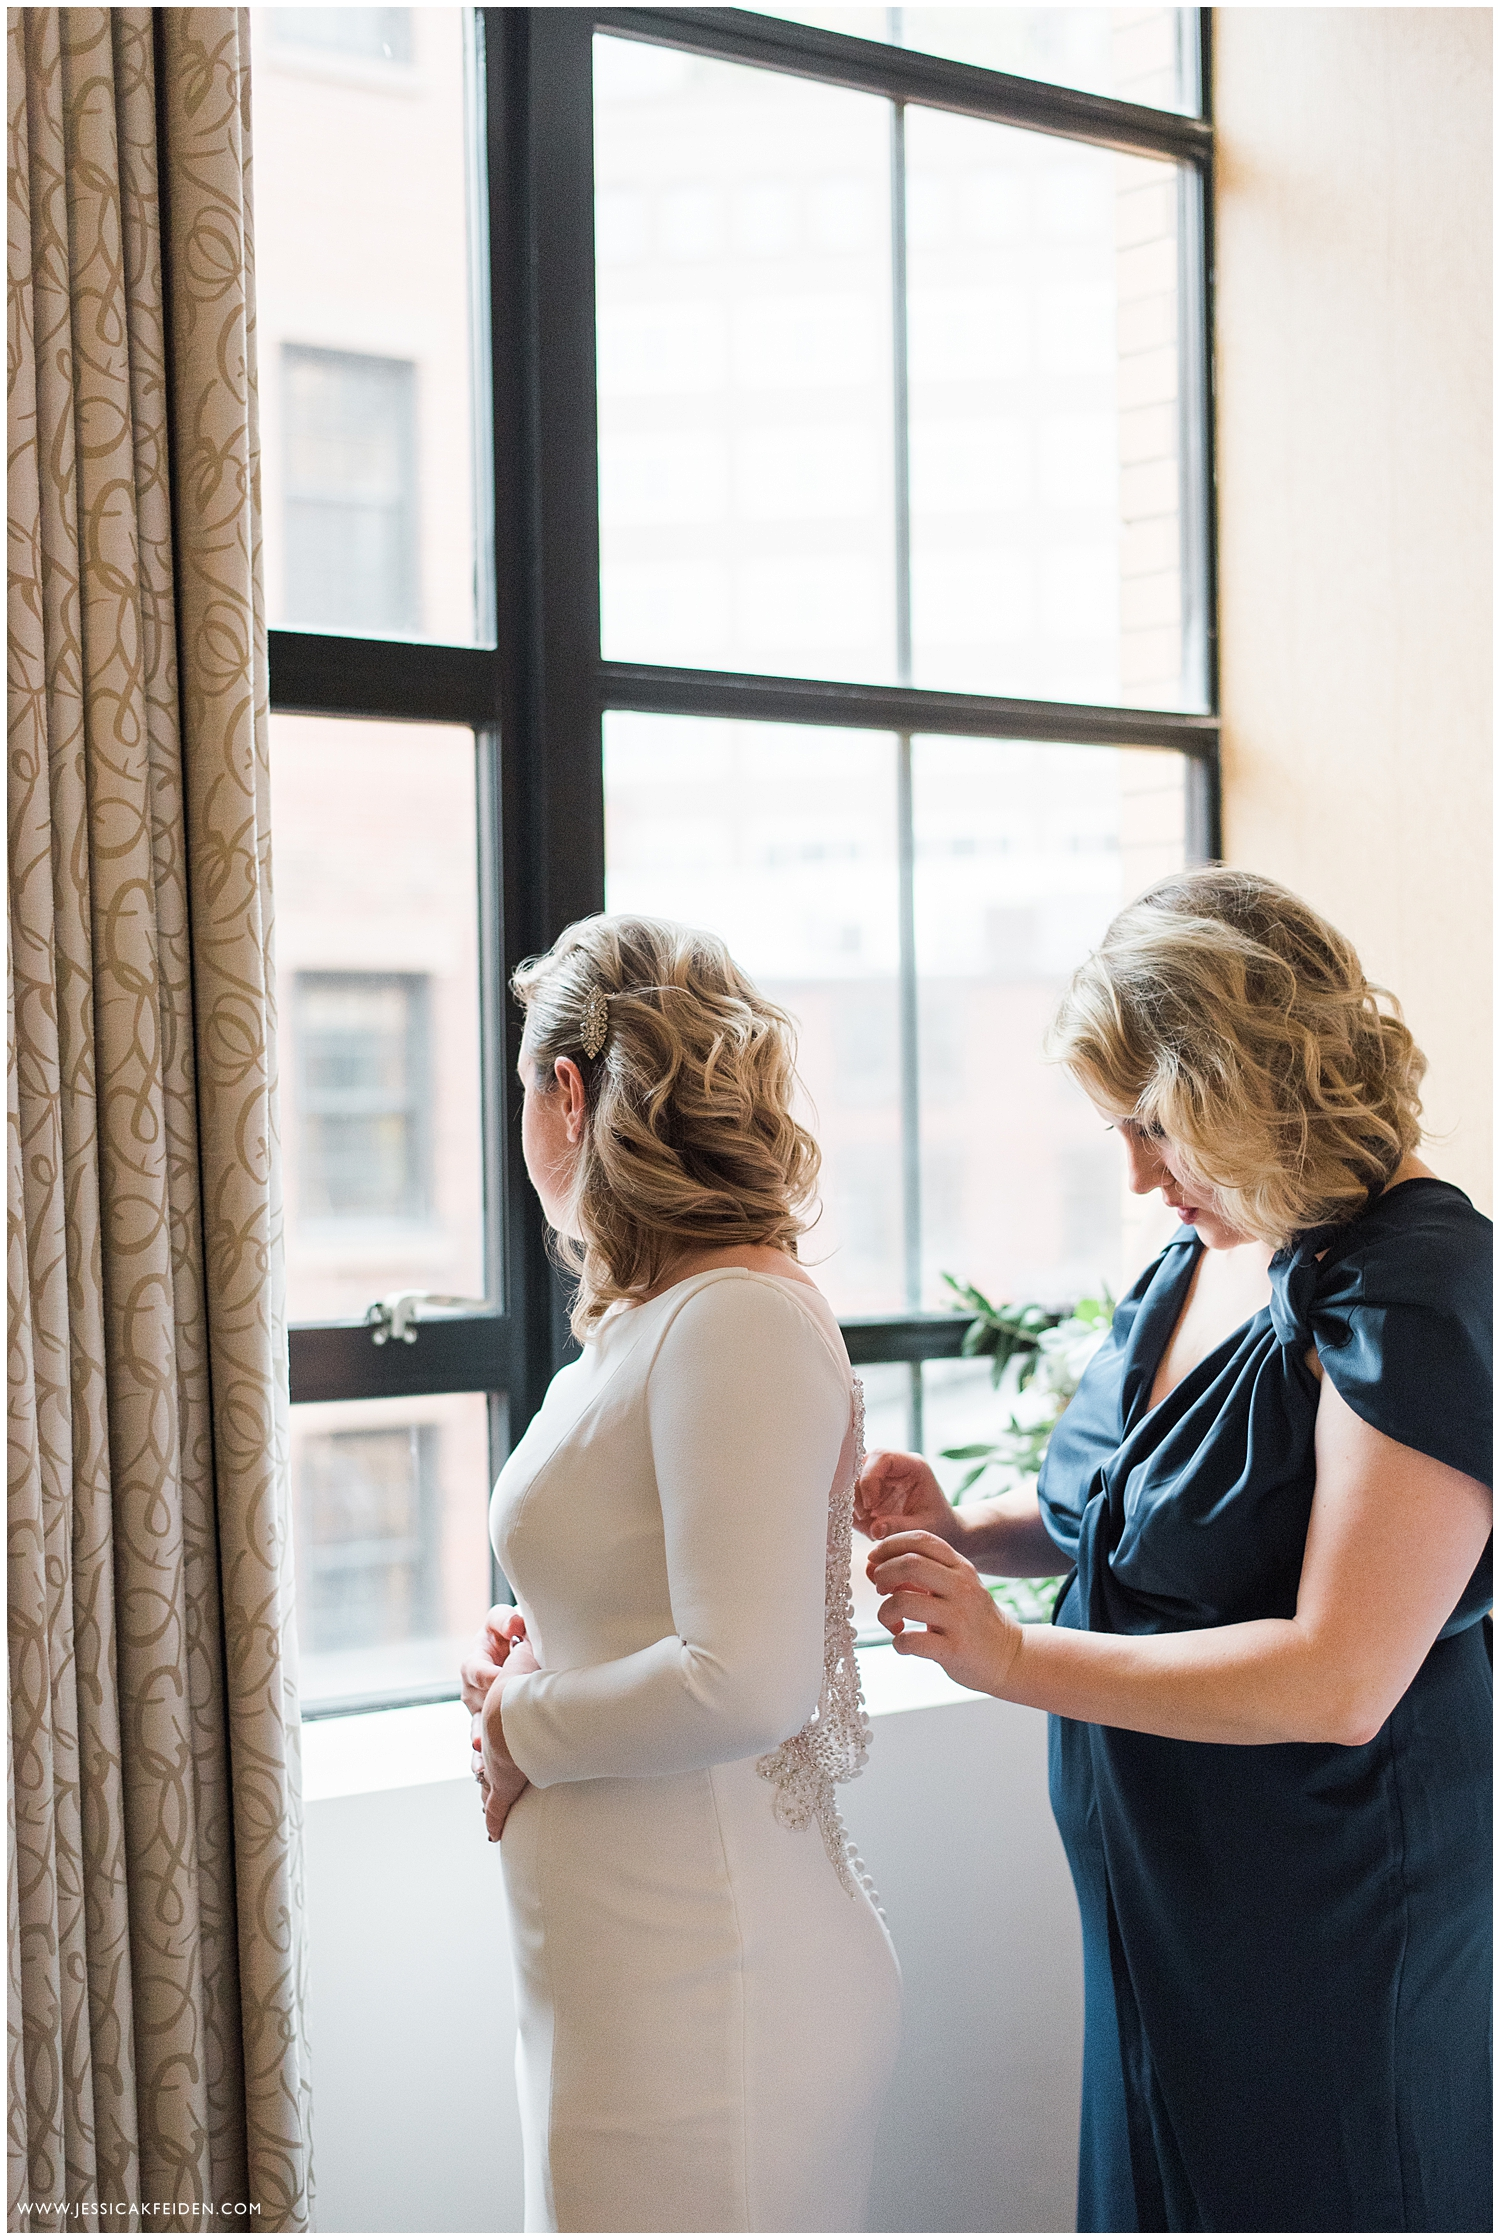 Jessica K Feiden Photography_The State Room Boston Wedding Photographer_0013.jpg